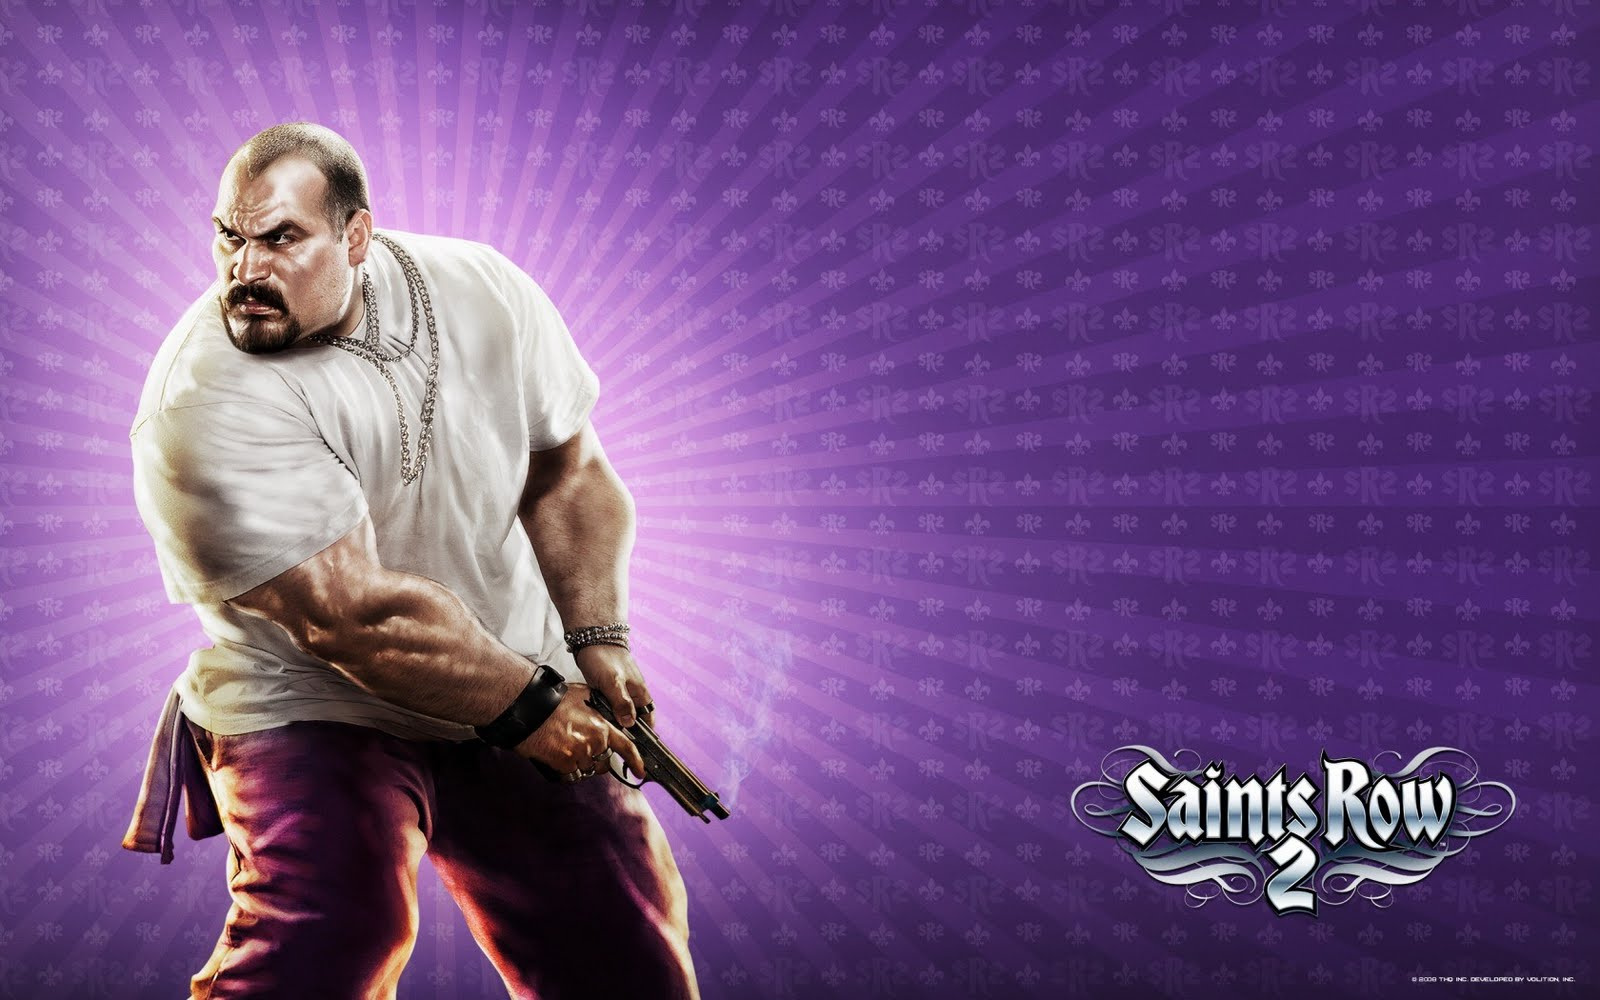 Saint Row Ii Hd Wallpapers Game Wallpapers Hd Wallpapers Backgrounds Photos Pictures Image Pc